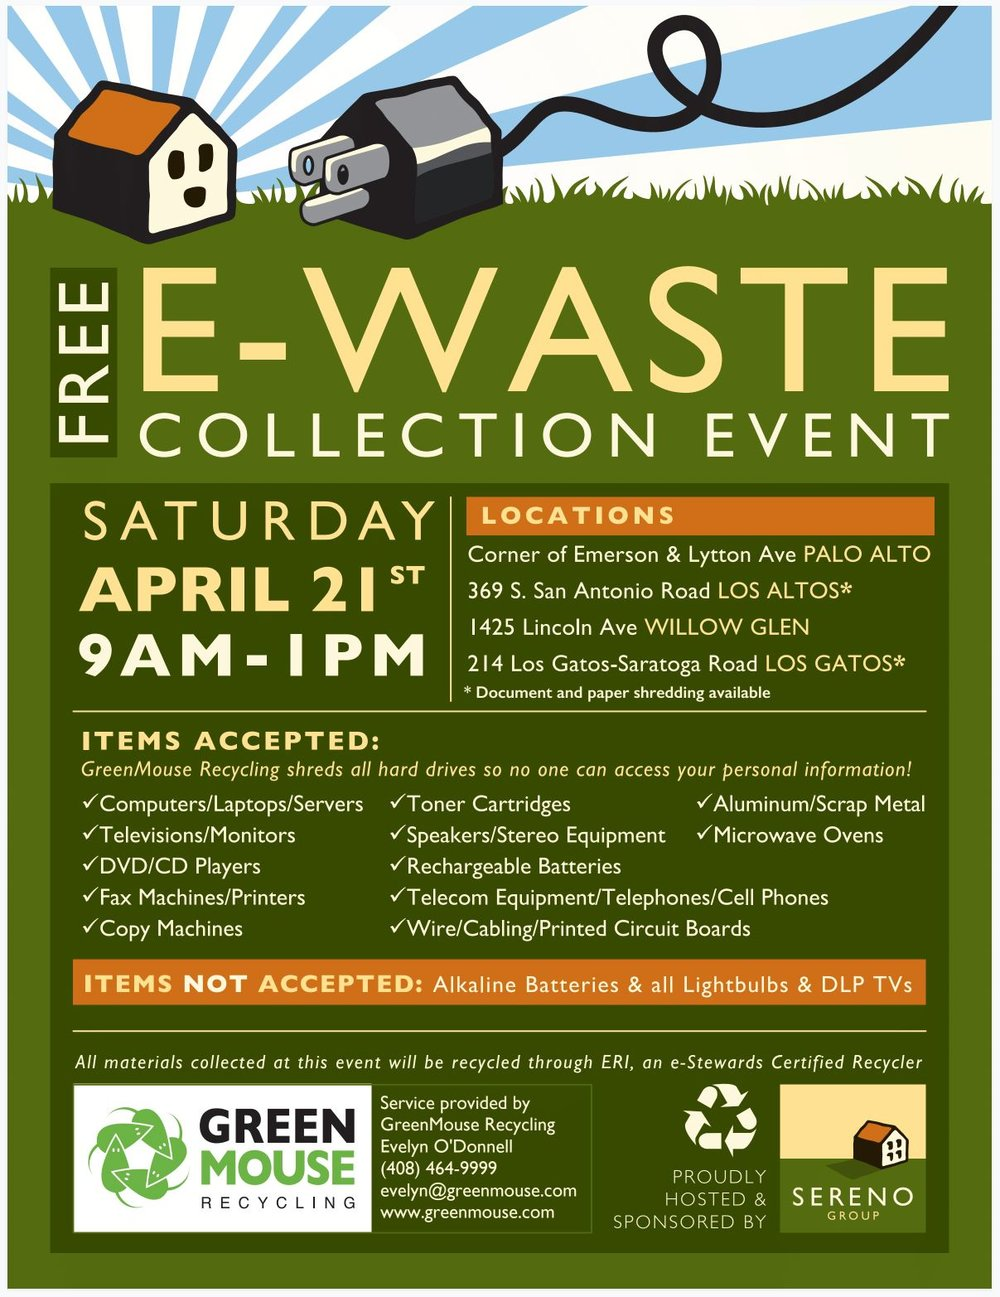 E Waste Event This Saturday April 21st Alex Wang Printed Circuit Board Recycling Equipment View